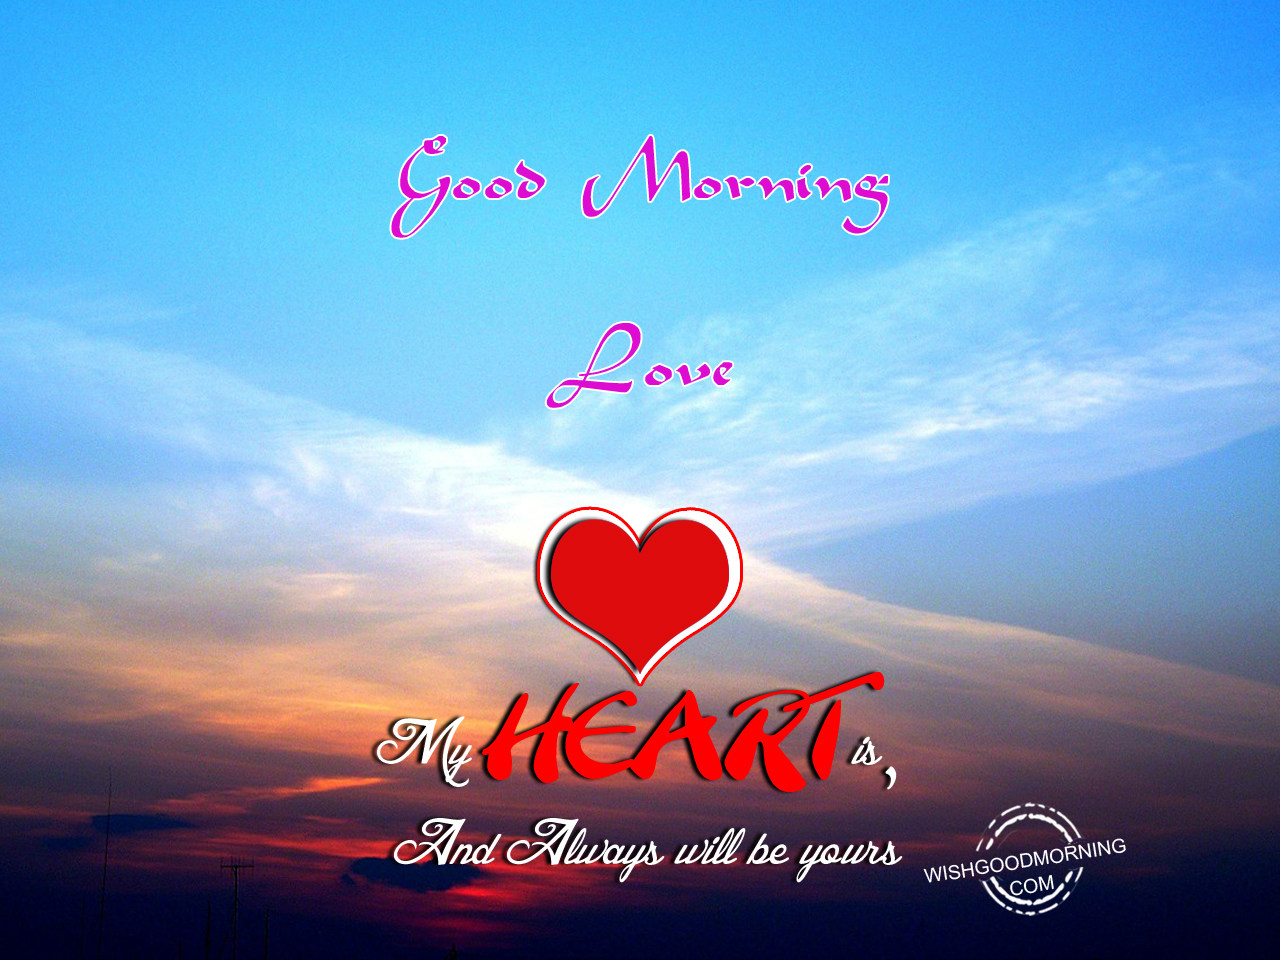 Good Morning Love Heart Images : Good morning wishes for boyfriend pictures